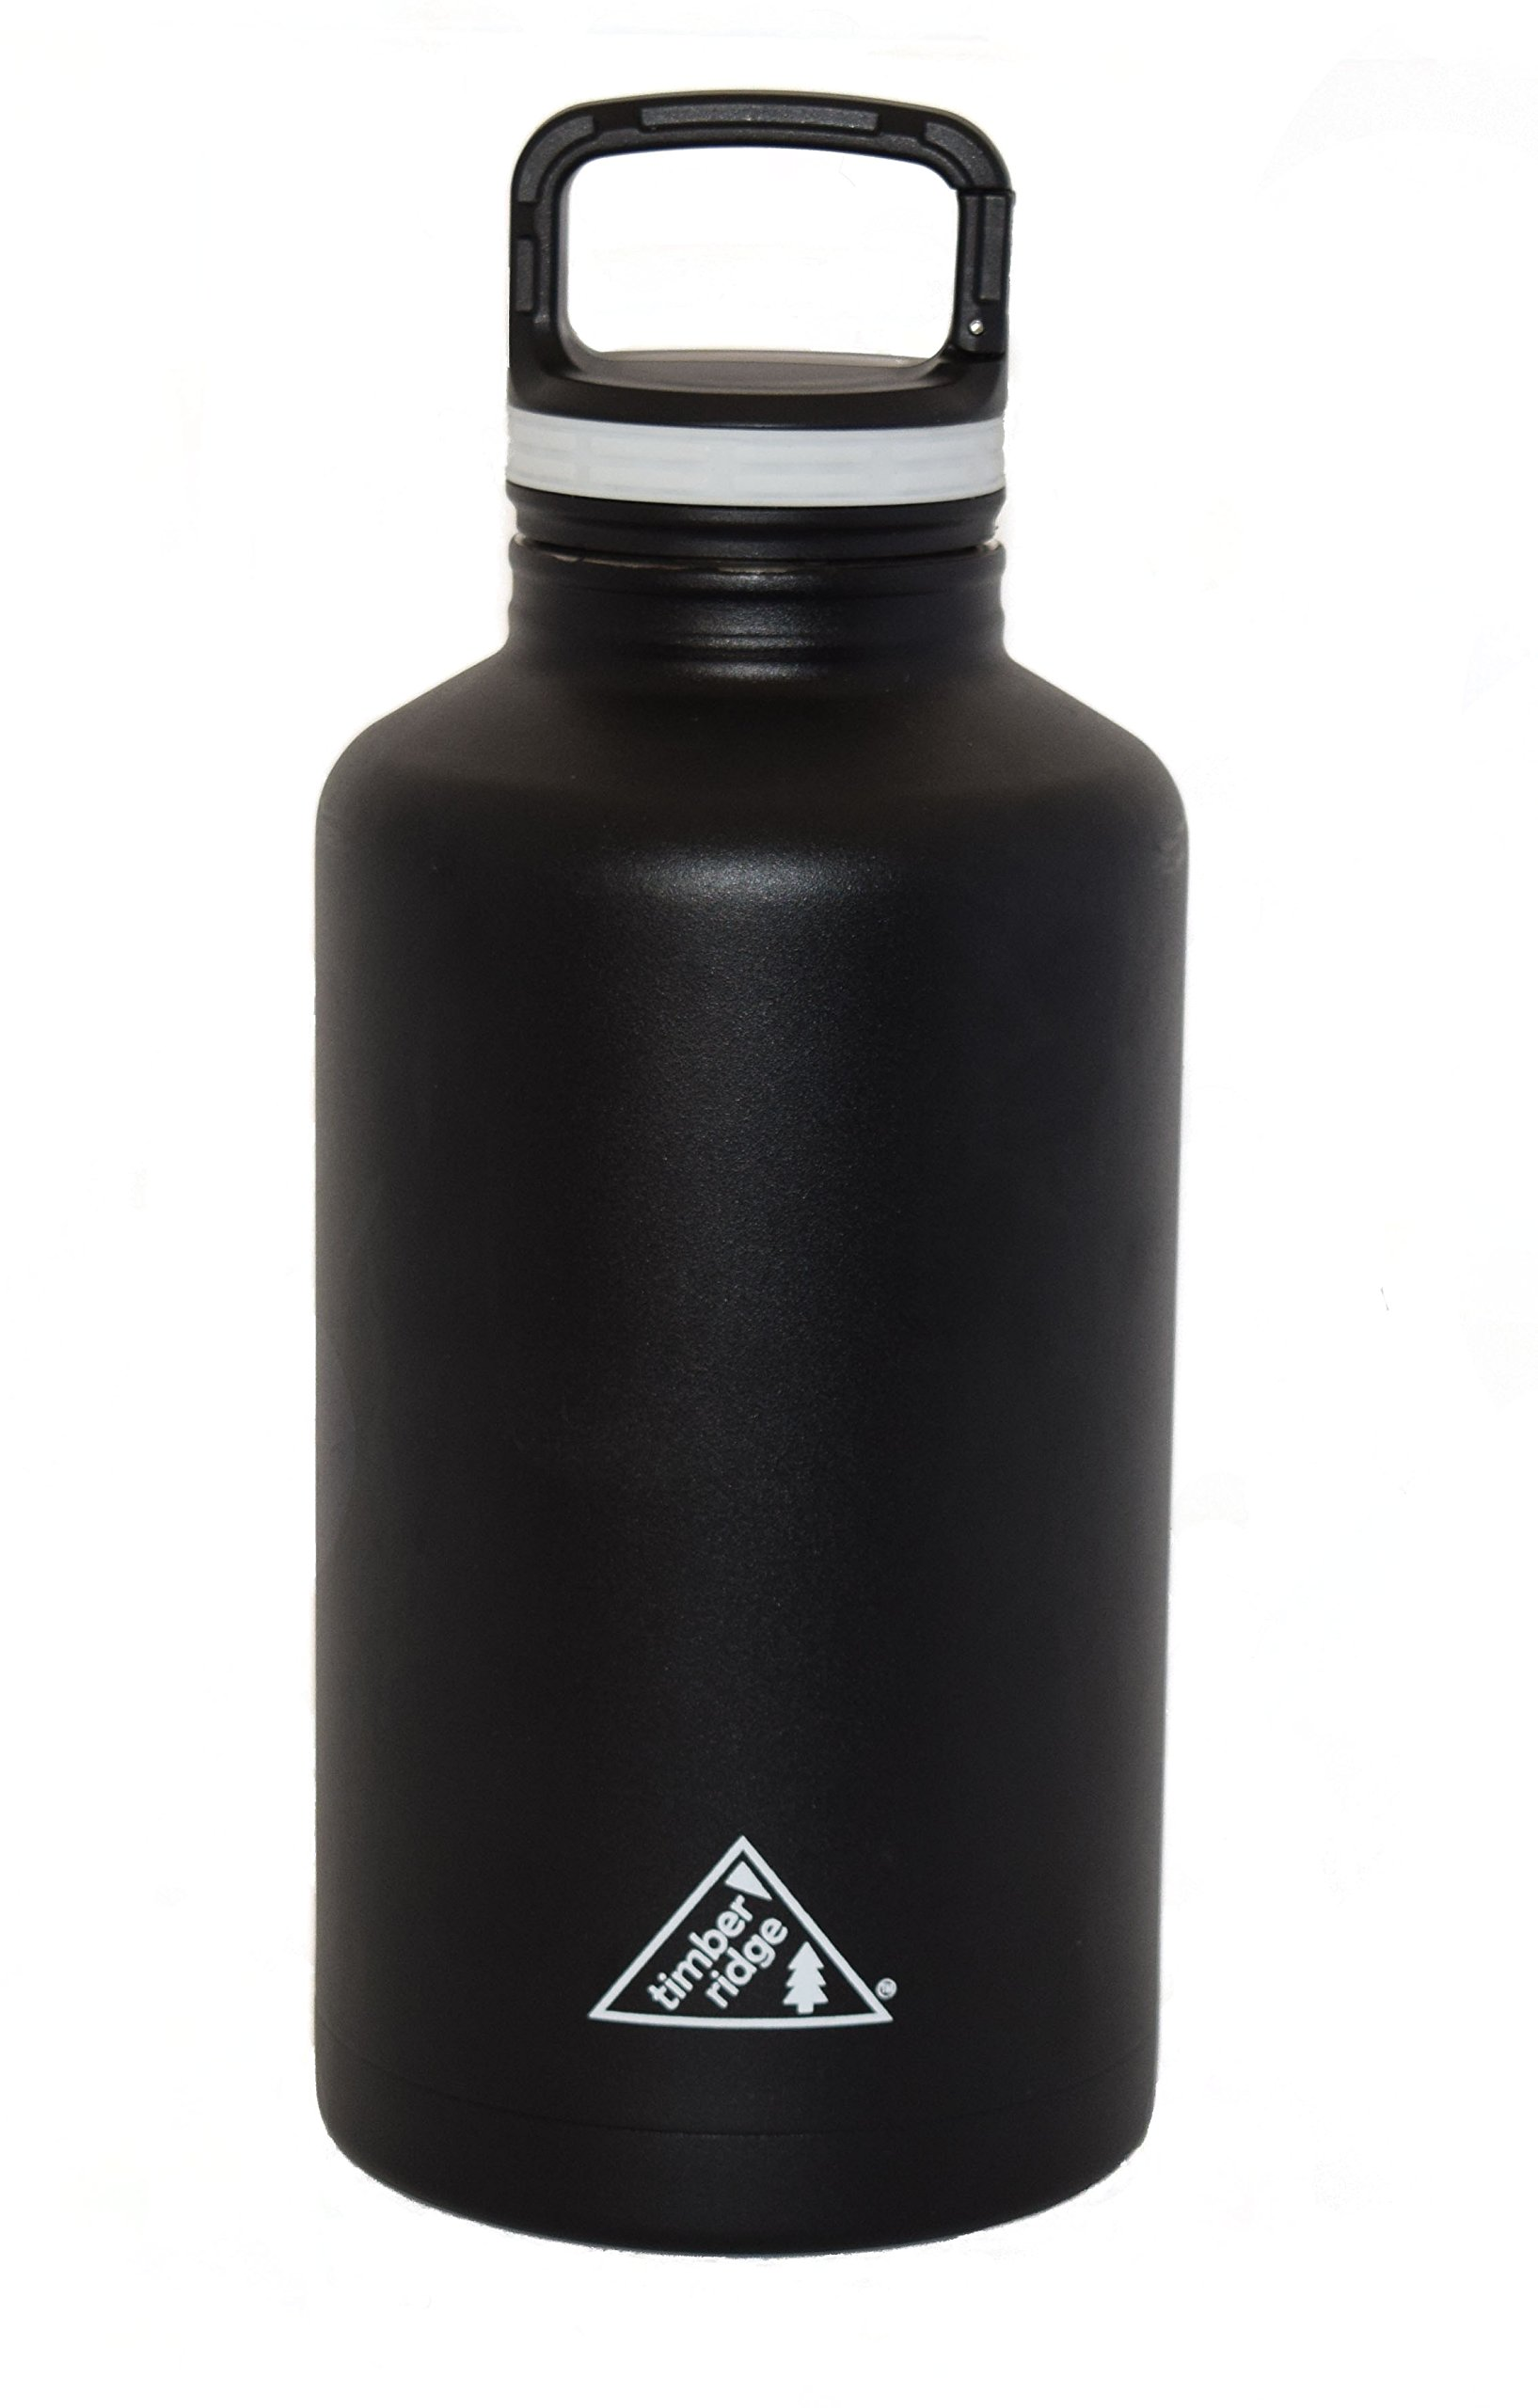 64 oz Stainless Steel Insulated Growler / Half Gallon Water Bottle - Vacuum Sealed Double Wall - Black - Wide Mouth with Caribiner Lid